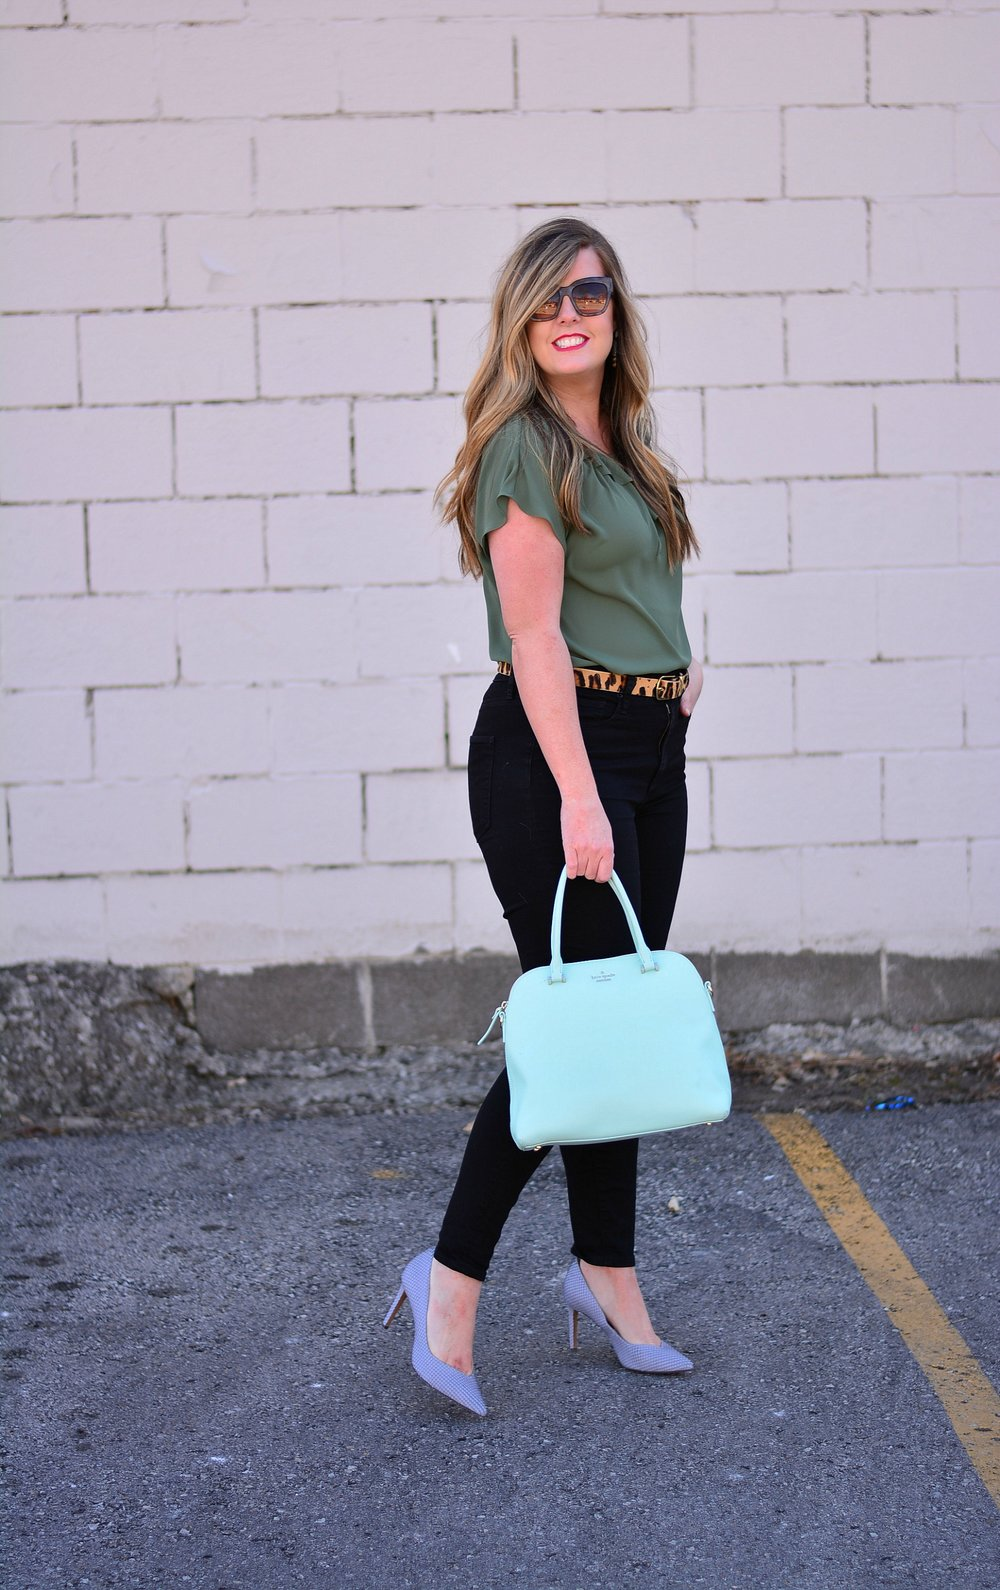 Olive silk top with black jeans